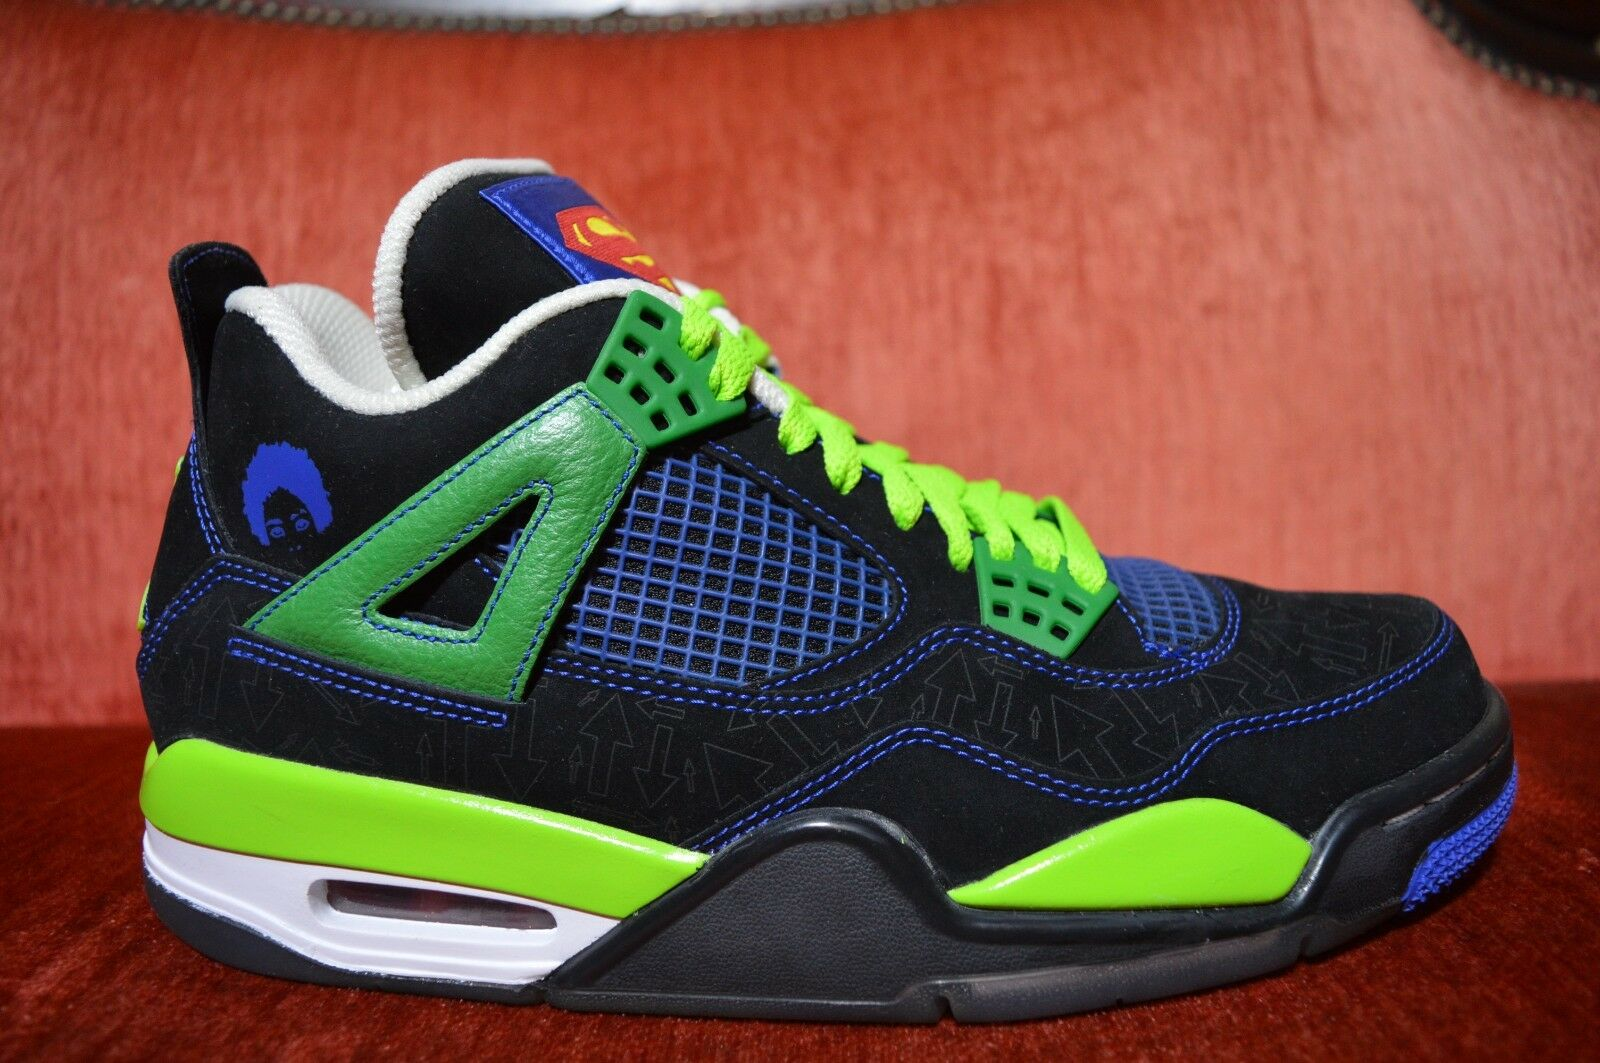 WORN 1X Nike AIR JORDAN IV 4 RETRO DB DOERNBECHER SIZE 8.5 Blue GREEN 308497 015